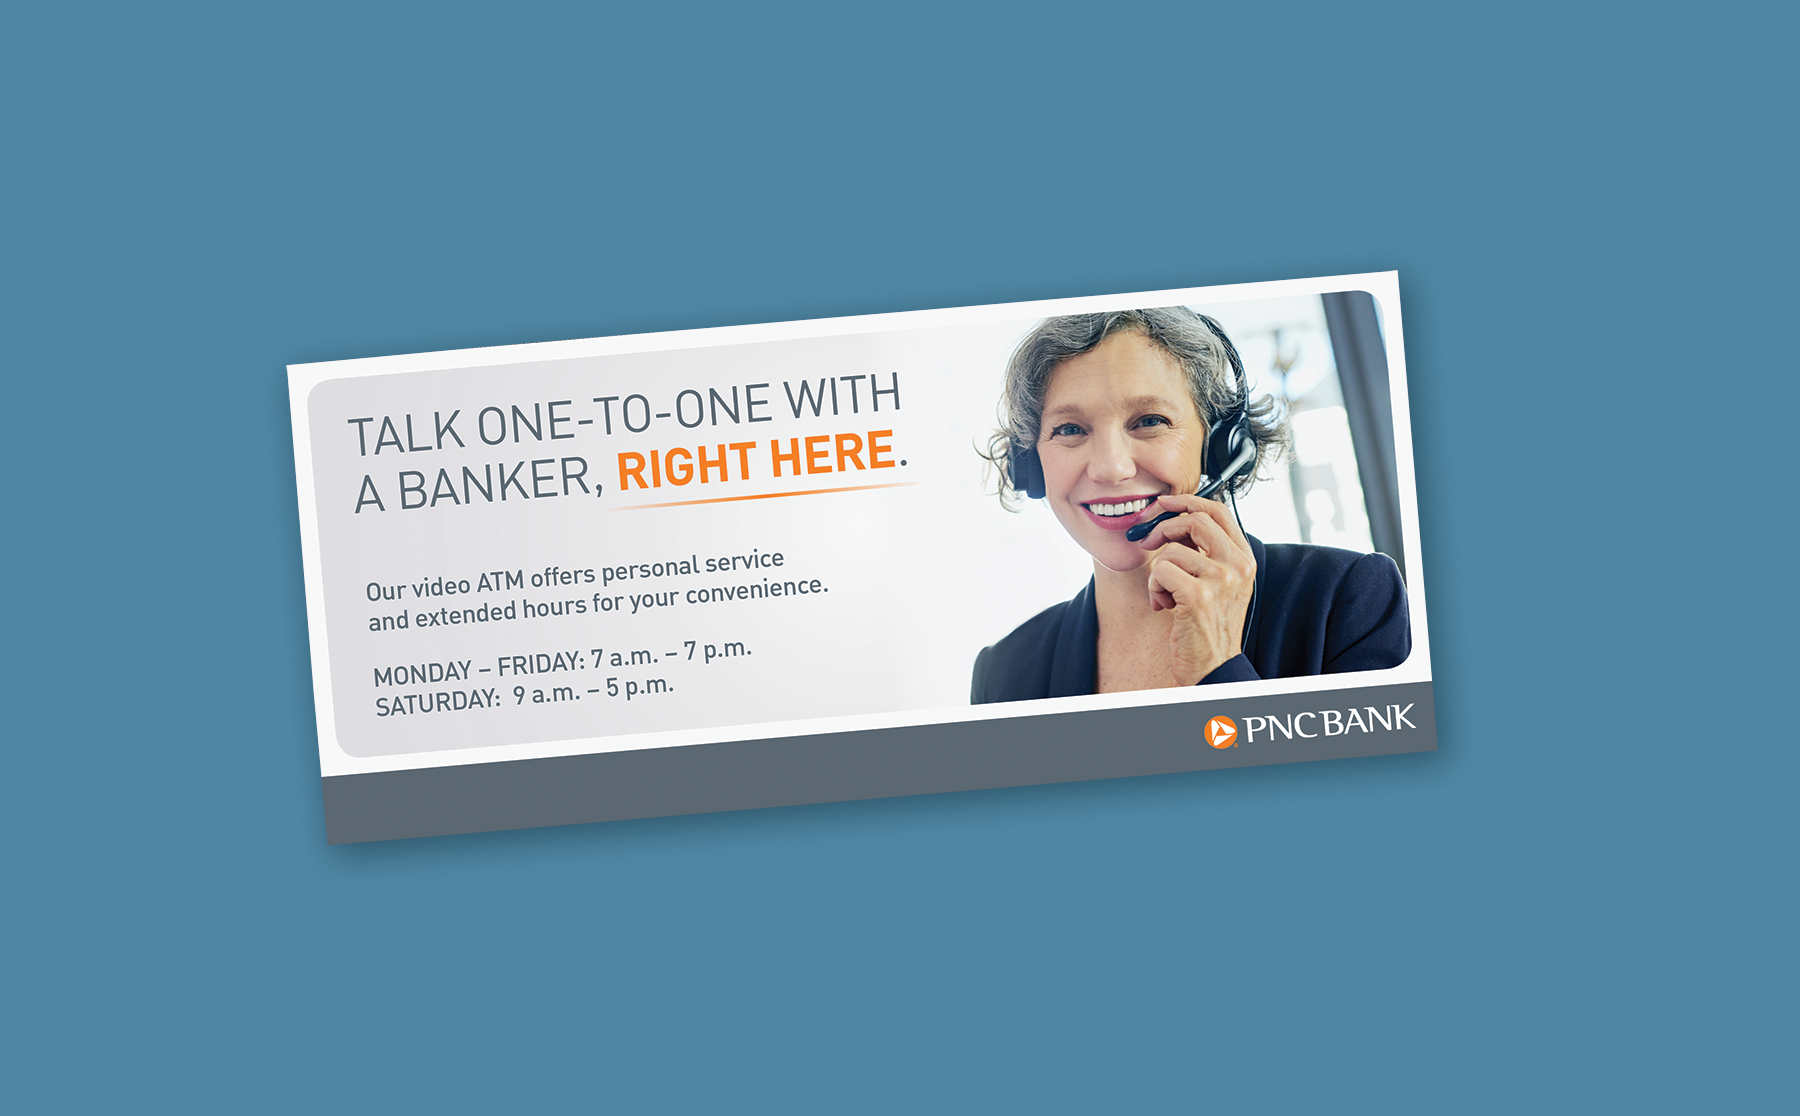 """A mockup of a long, horizontal sign over a blue background. The sign features a light gray gradient background, with a headline reading """"Talk one-to-one with a banker, right here"""" next to an image of a happy banker speaking through a headset."""